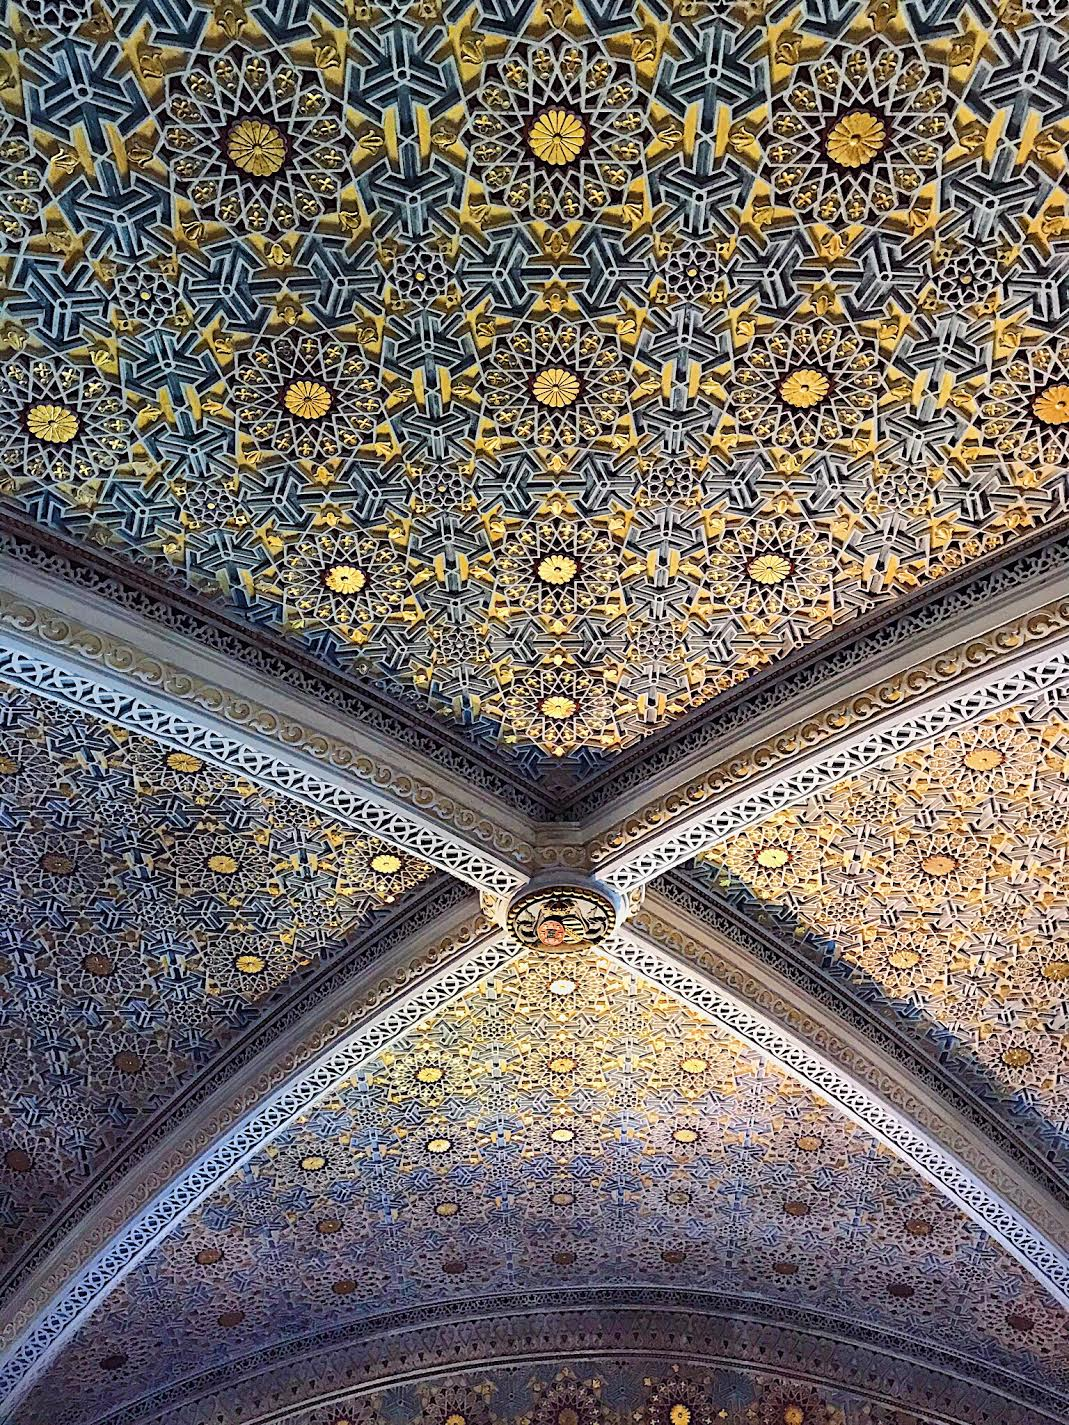 Pena-Palace-intricate-ceiling